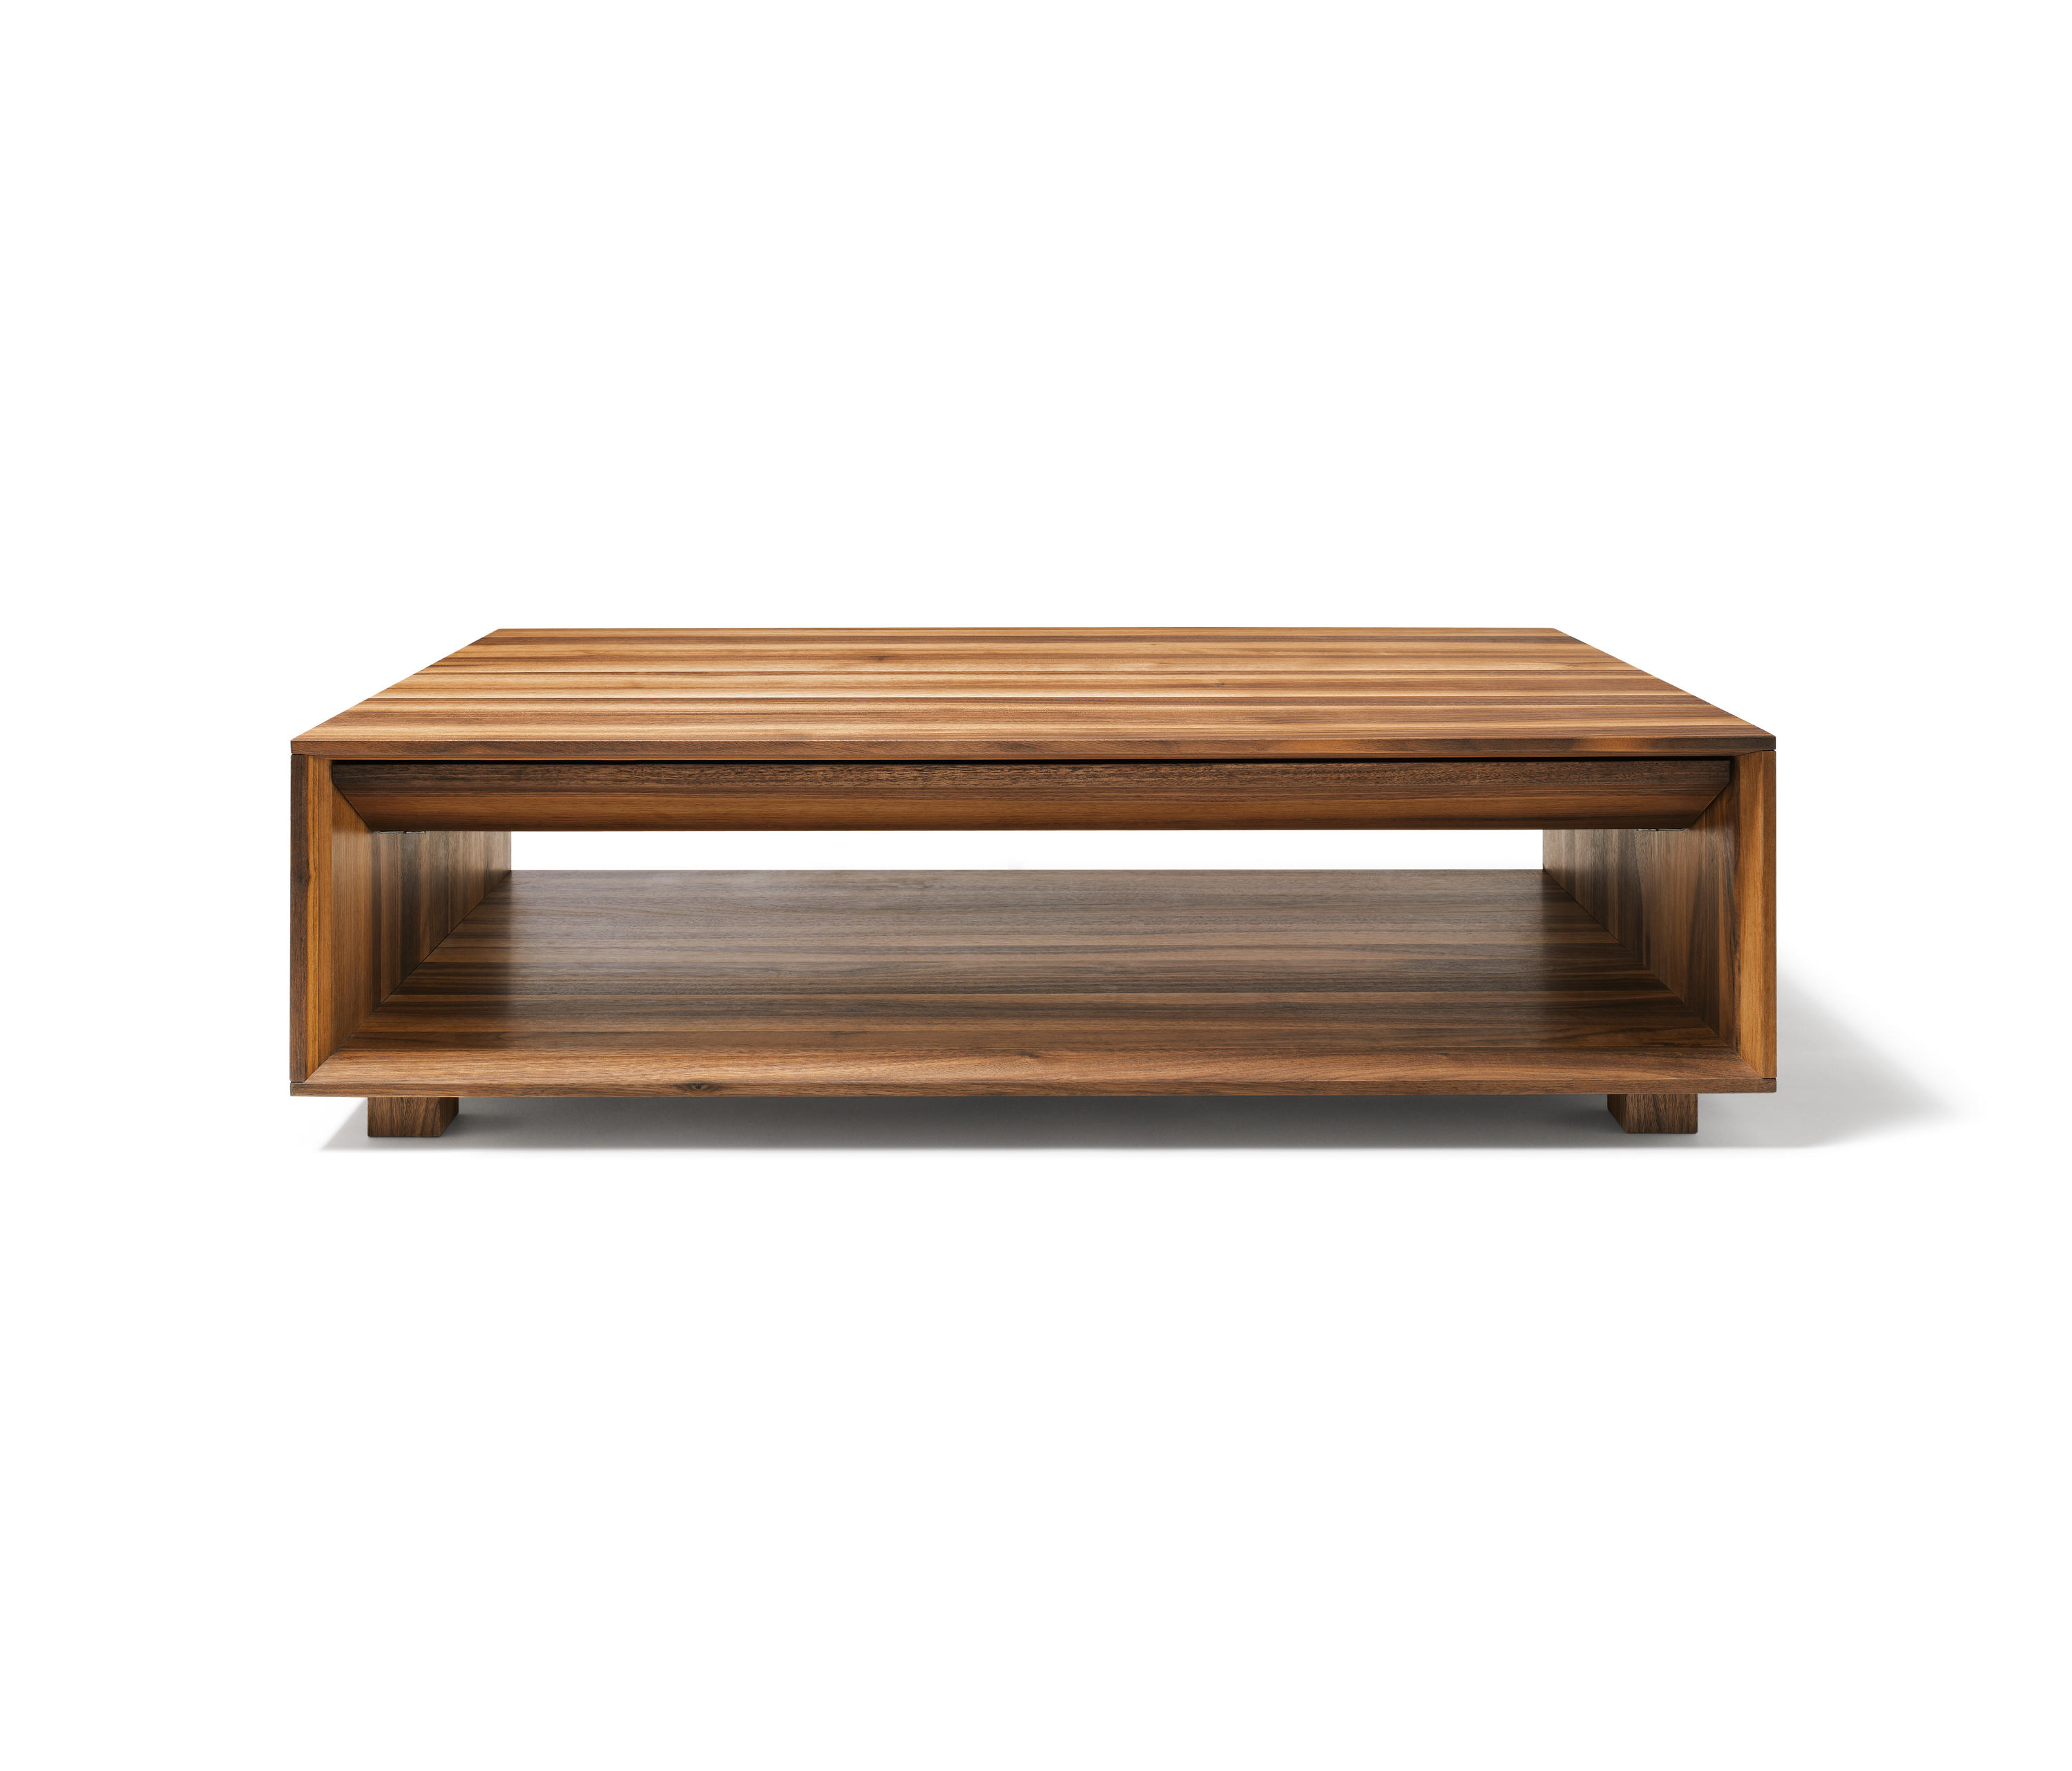 Hub Couchtisch Coffee Tables With Drawer High Quality Designer Coffee Tables